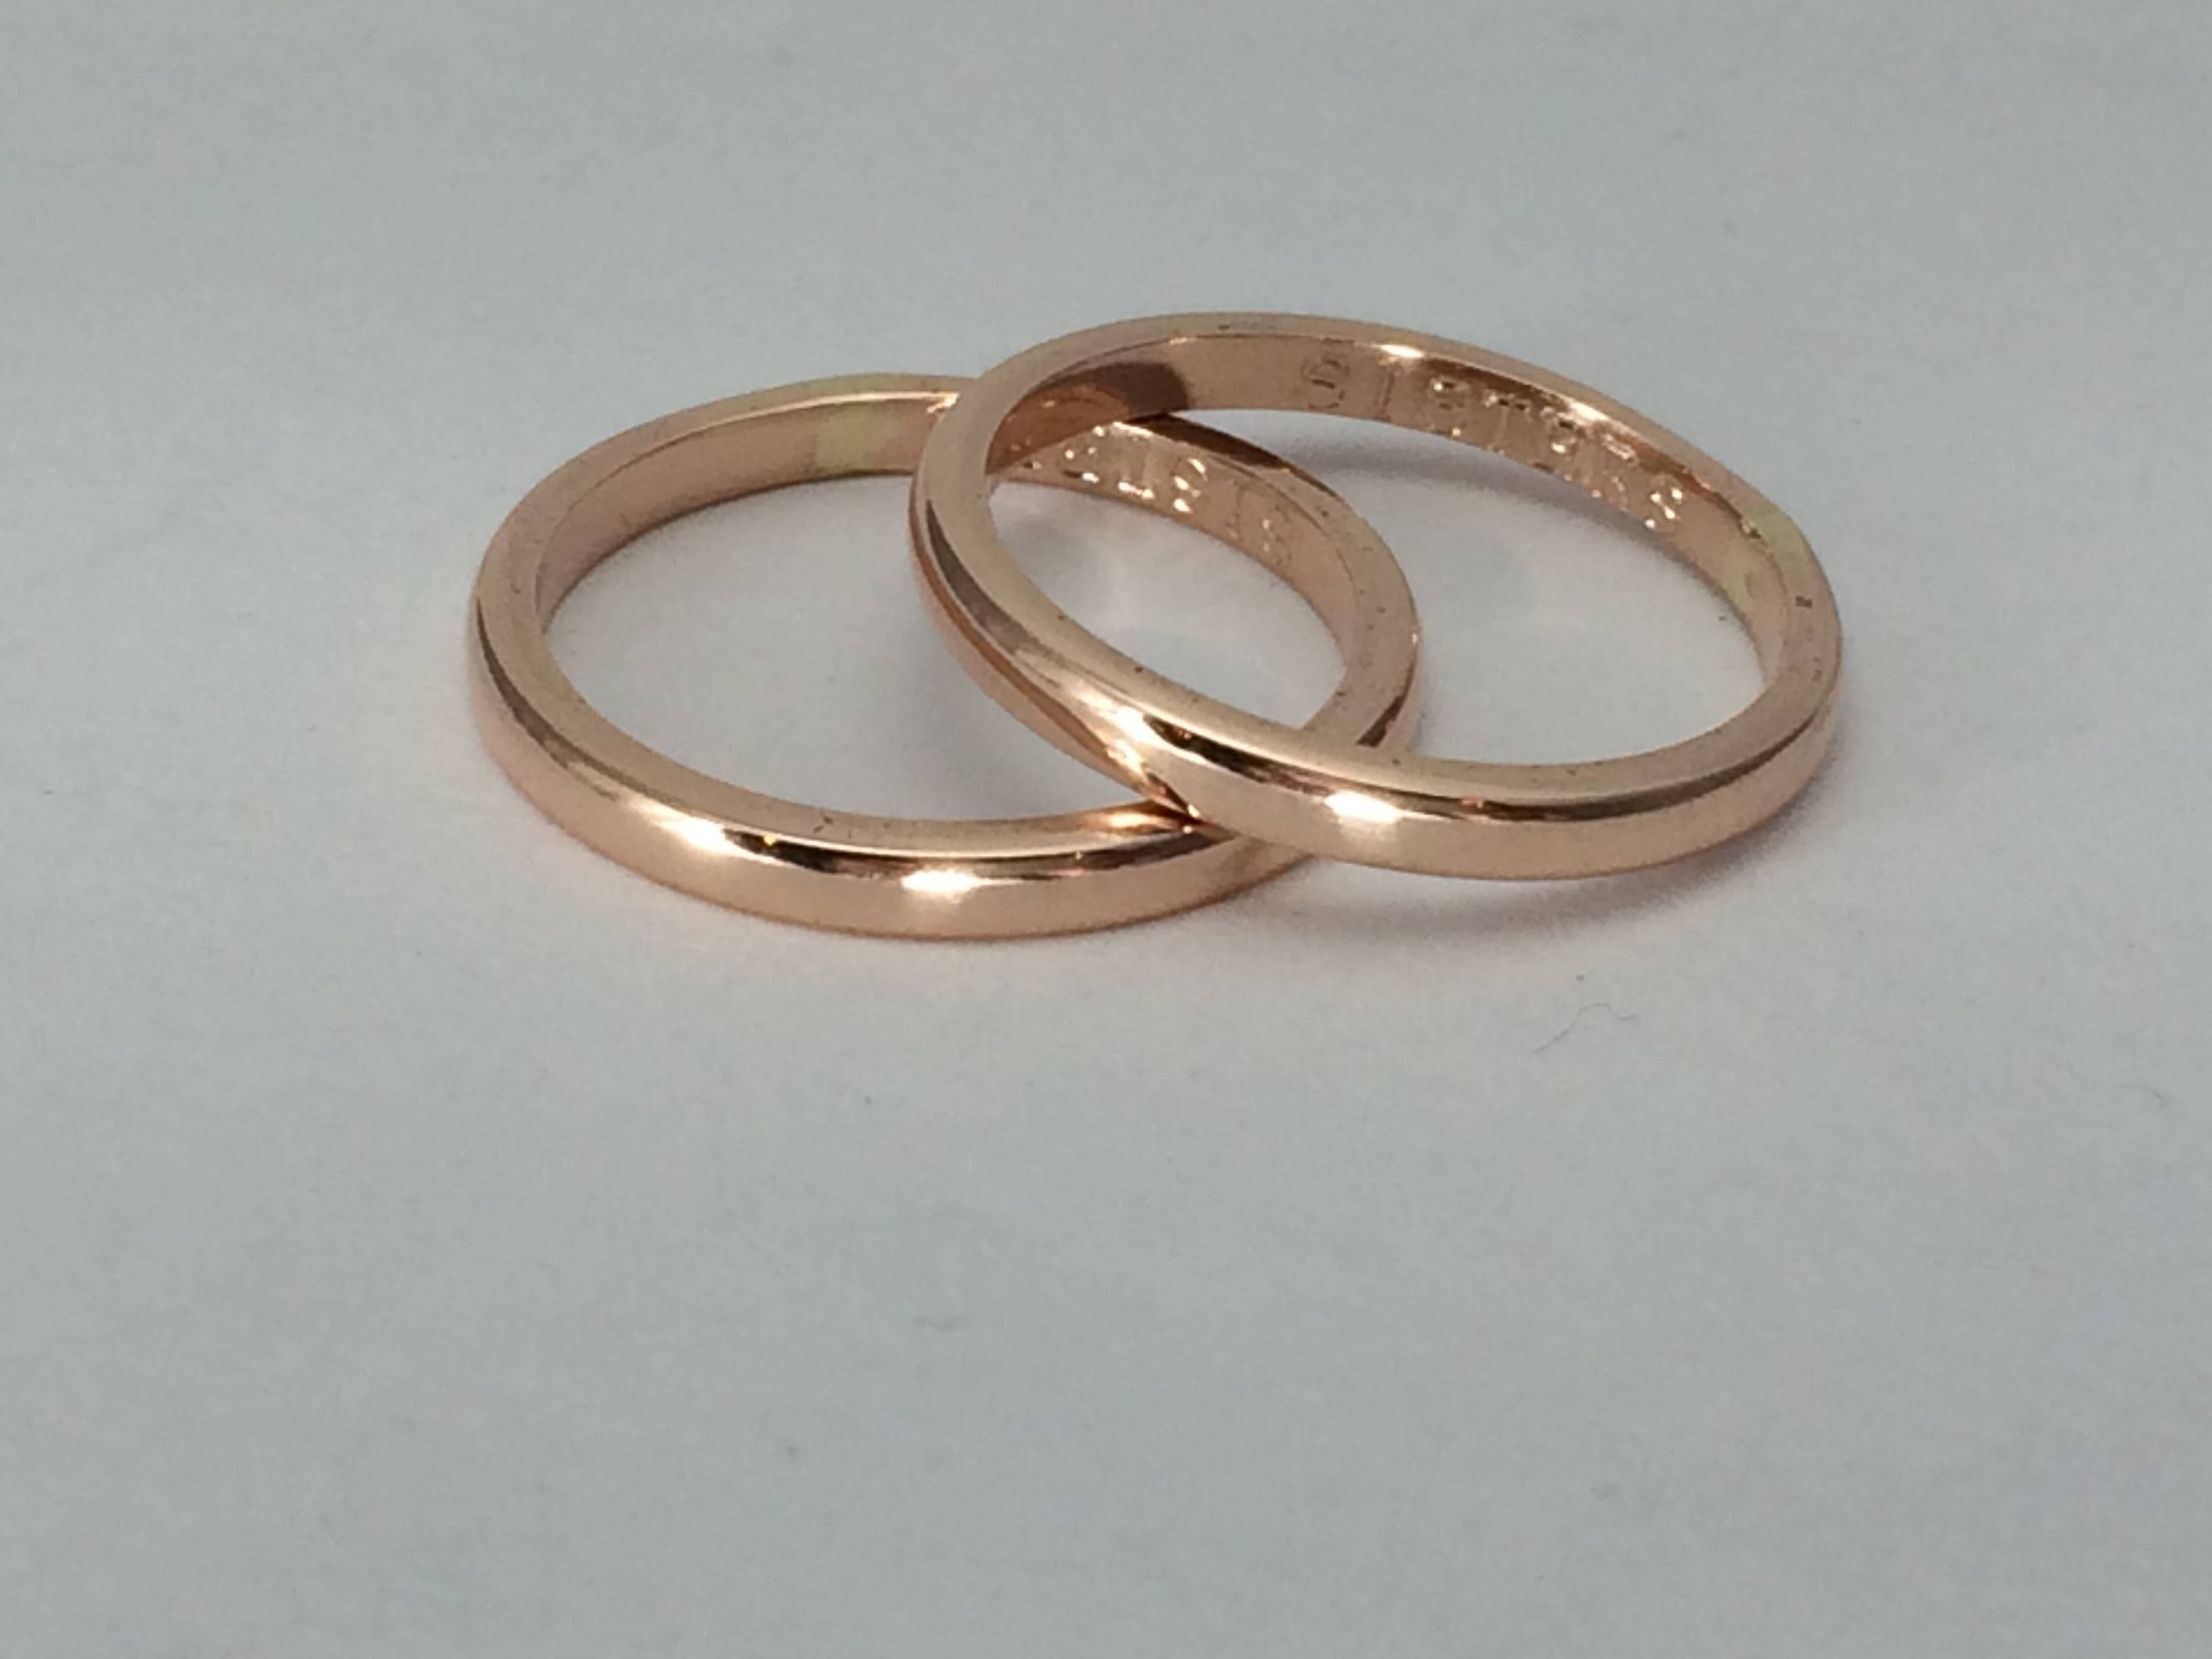 One Ring, 10Kt Gold, 12G Rose Or Yellow Gold Ring, 2Mm Wide, 1.5Mm Within 2018 2Mm Rose Gold Wedding Bands (Gallery 9 of 15)